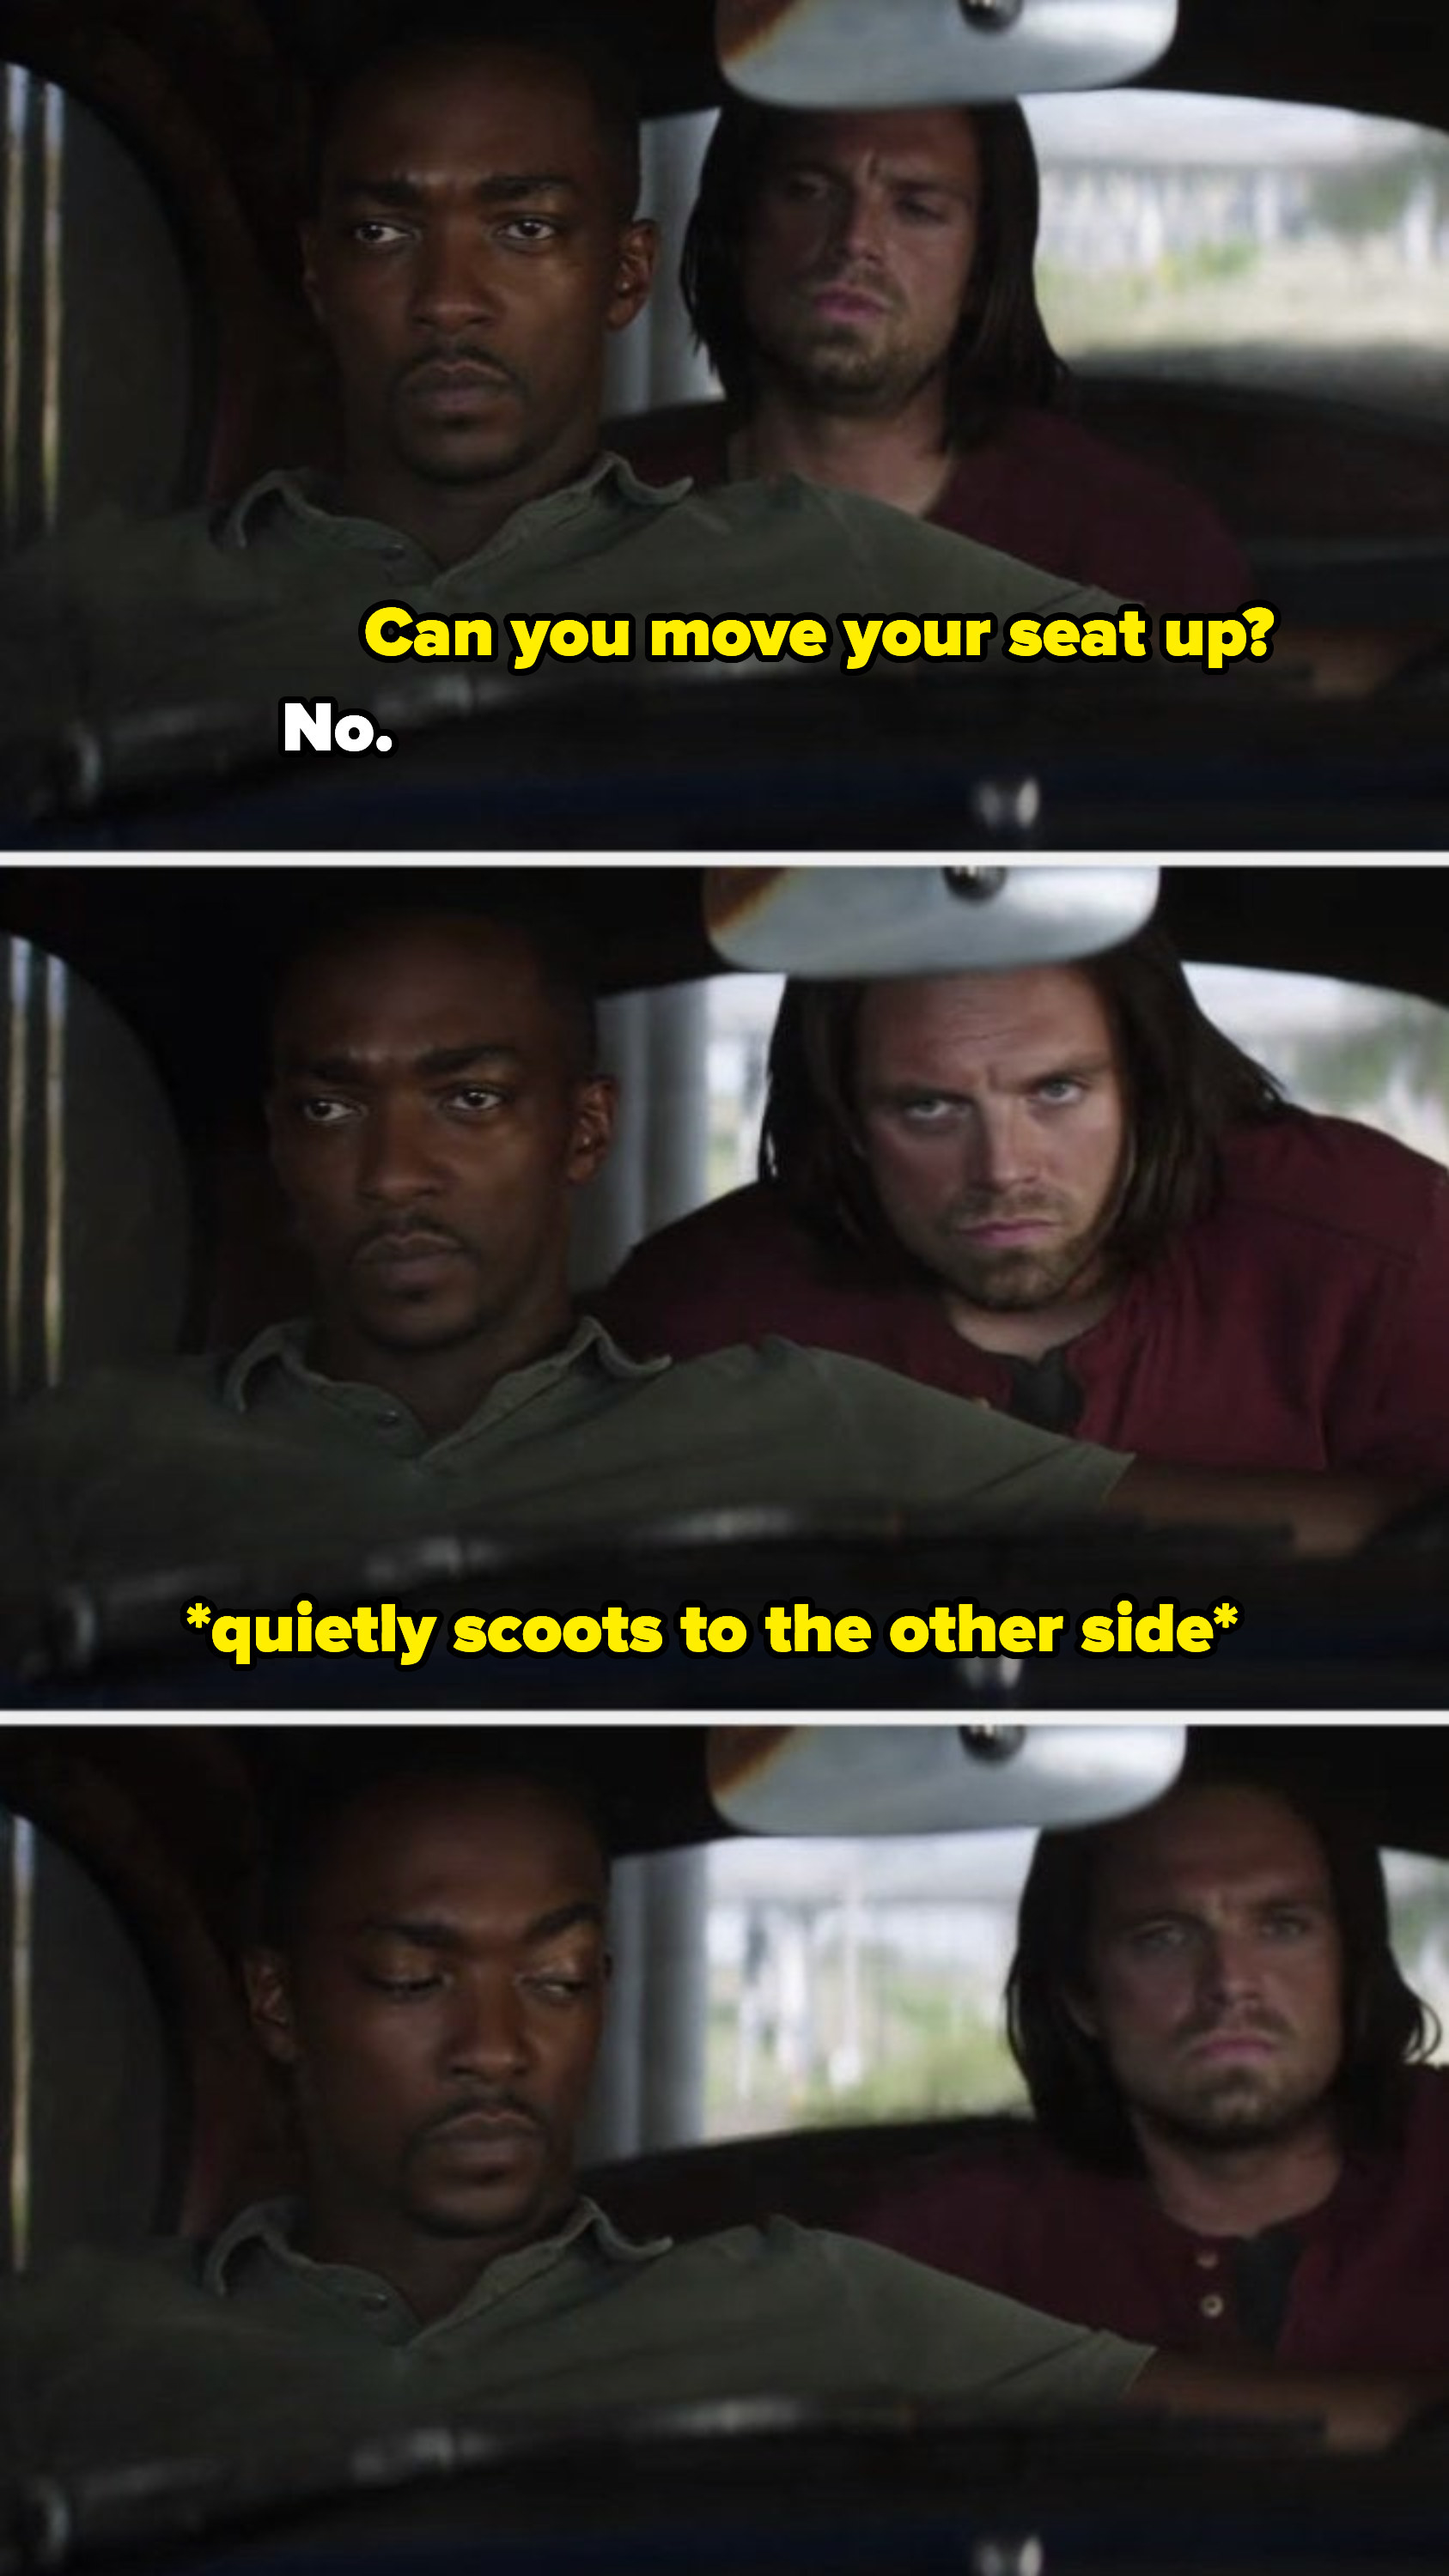 Sam refusing to move his seat up for Bucky, and Bucky scooting to the other side